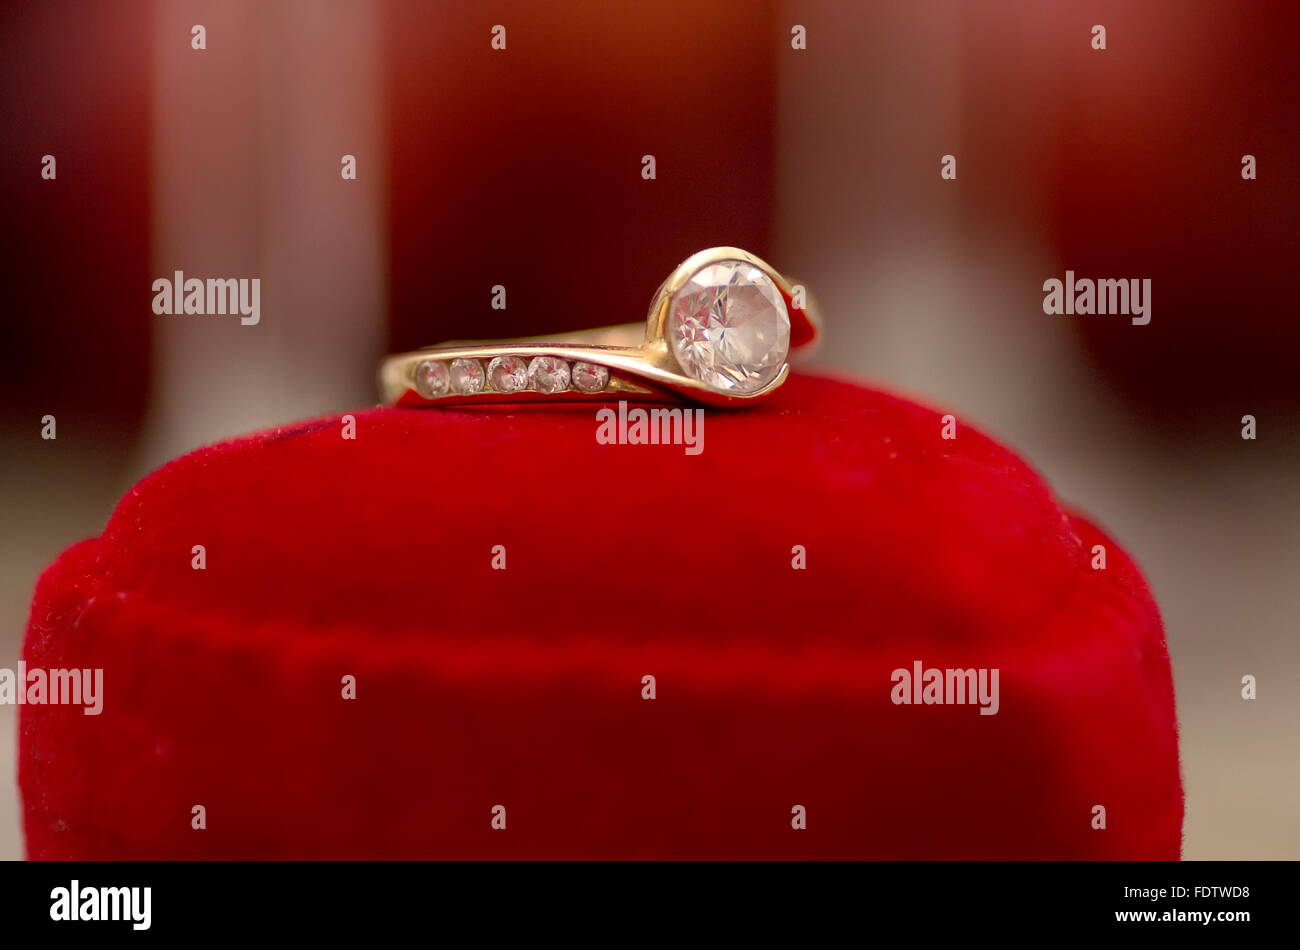 Engagement ring on the red box. - Stock Image